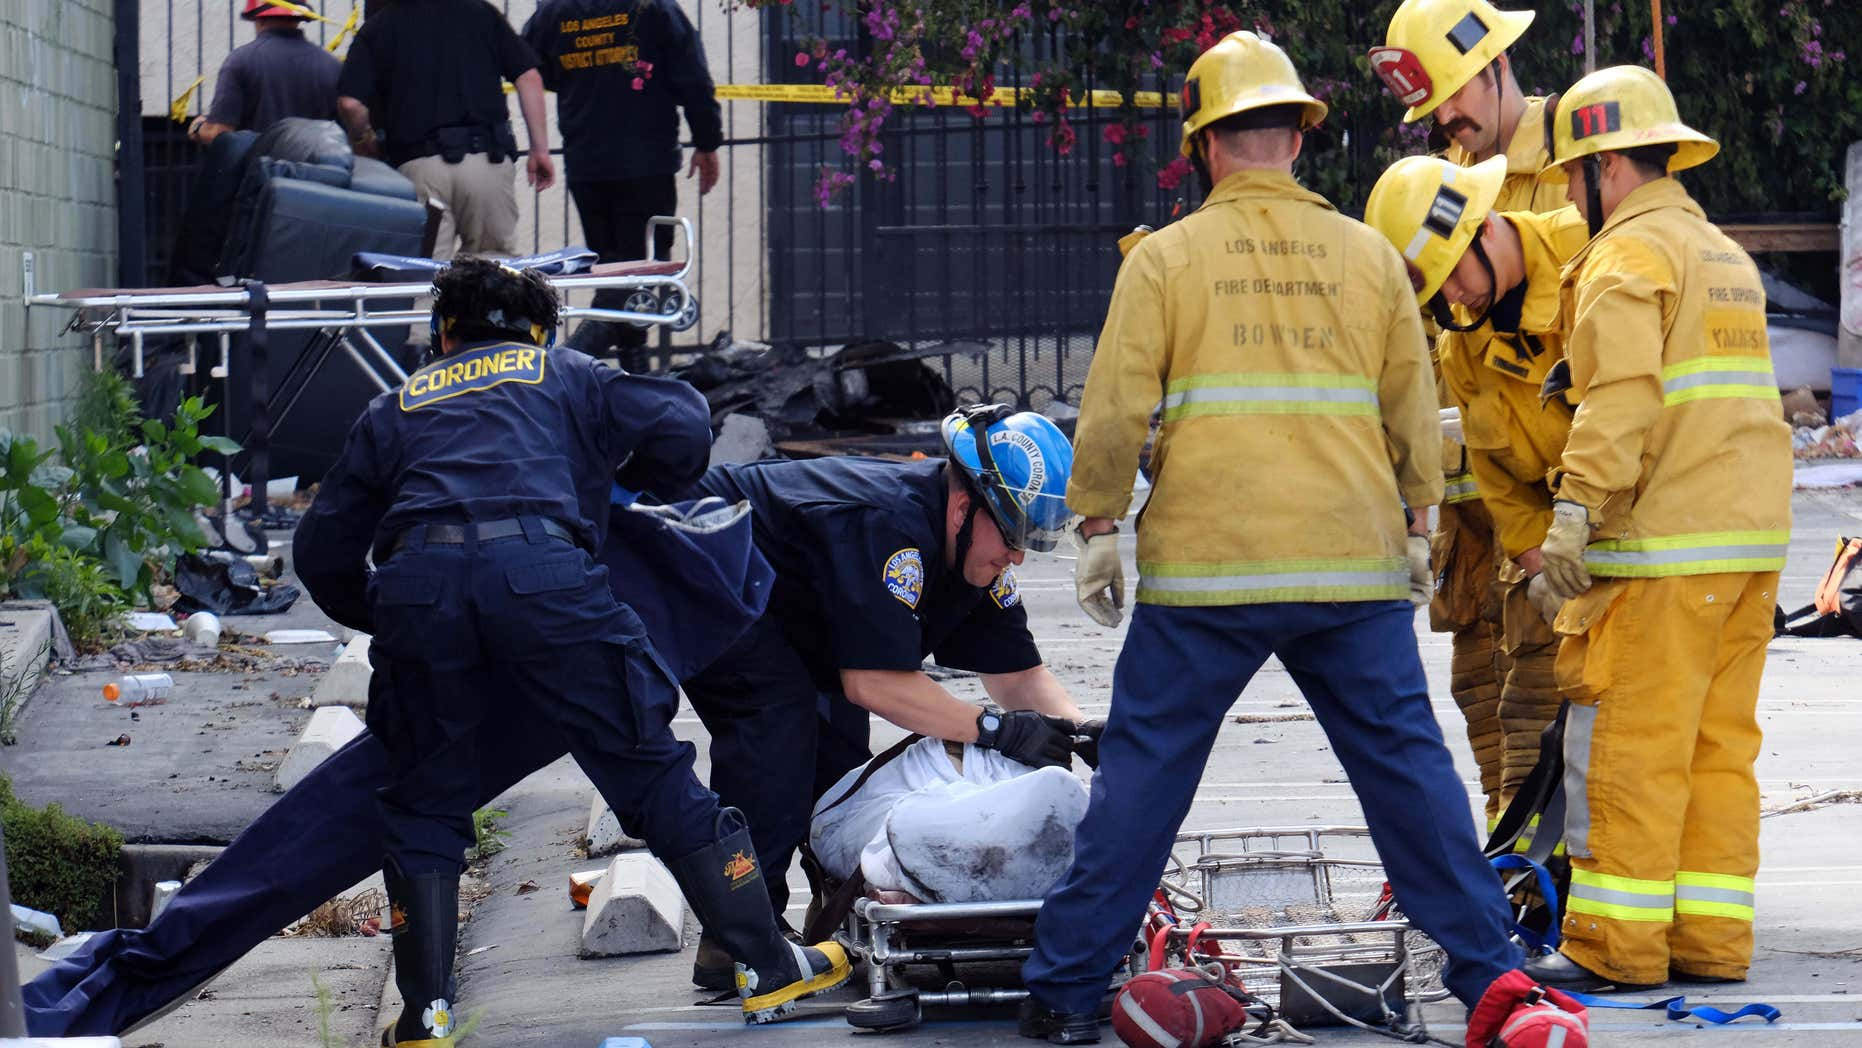 June 14, 2016: Coroner's officials and firefighters prepare to move one of four bodies found in the burned-out ruins of a abandoned office building in the Westlake district just west of downtown Los Angeles.